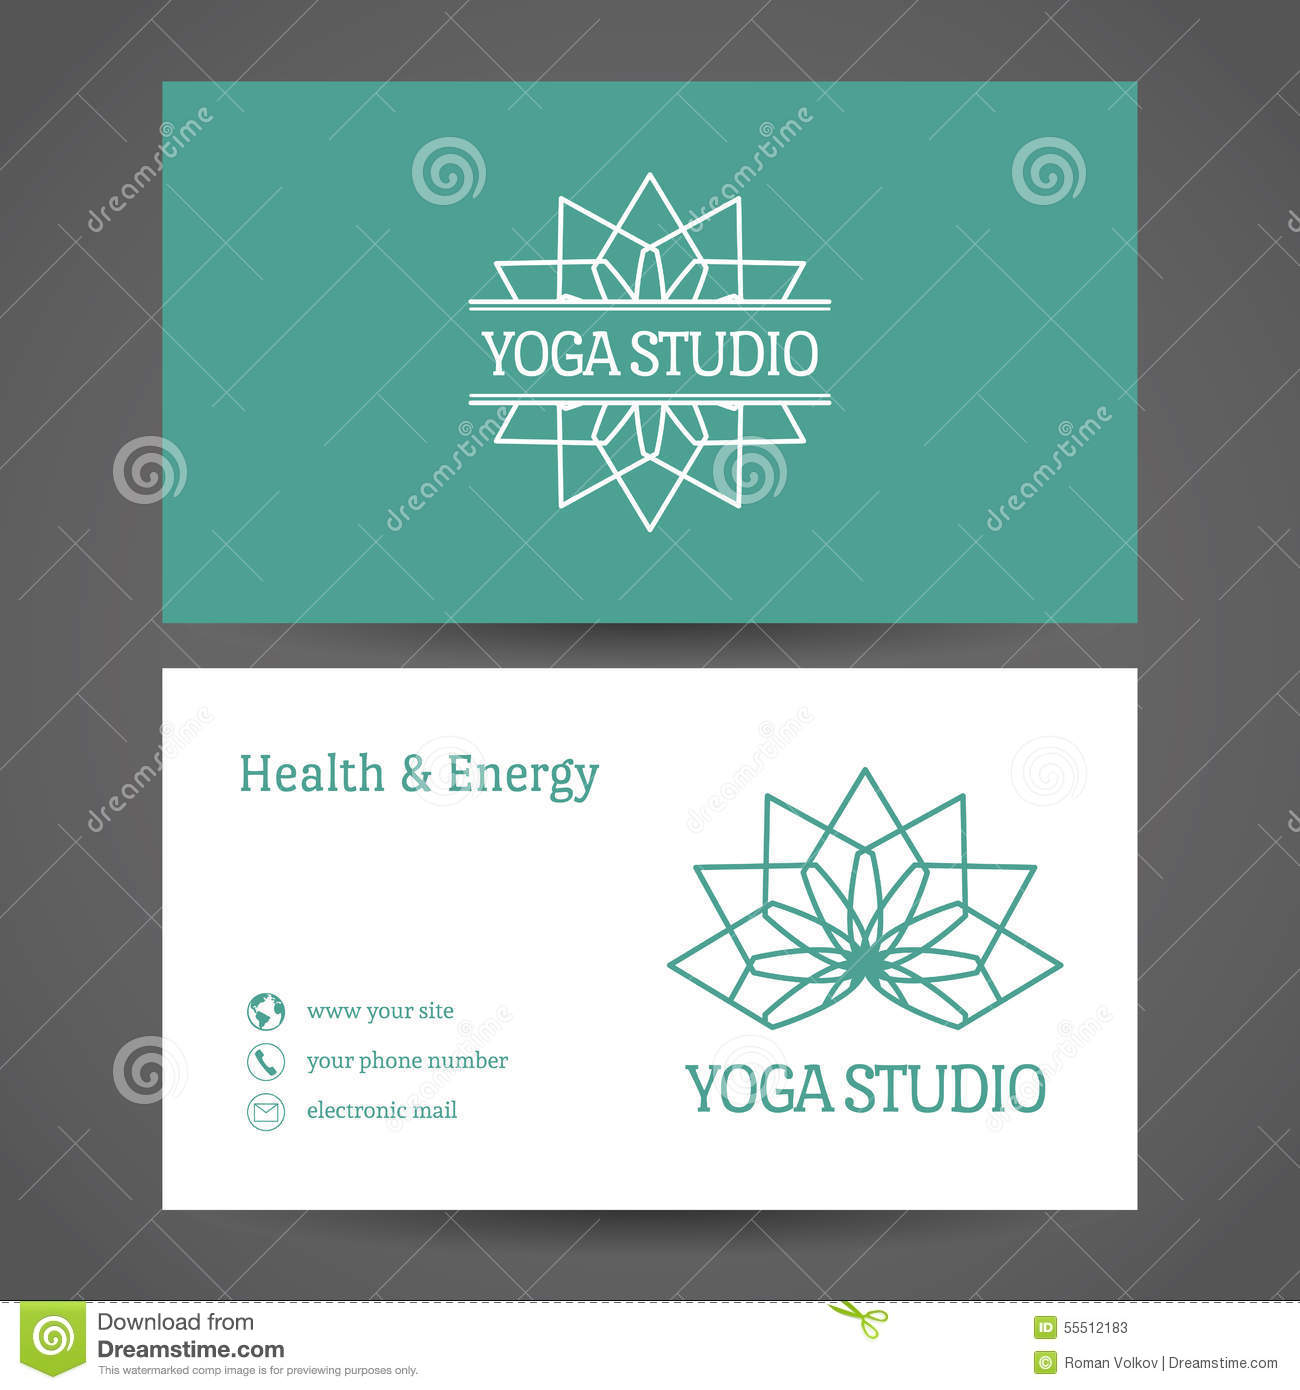 Yoga Studio Vector Business Card Template Stock Vector - Image ...